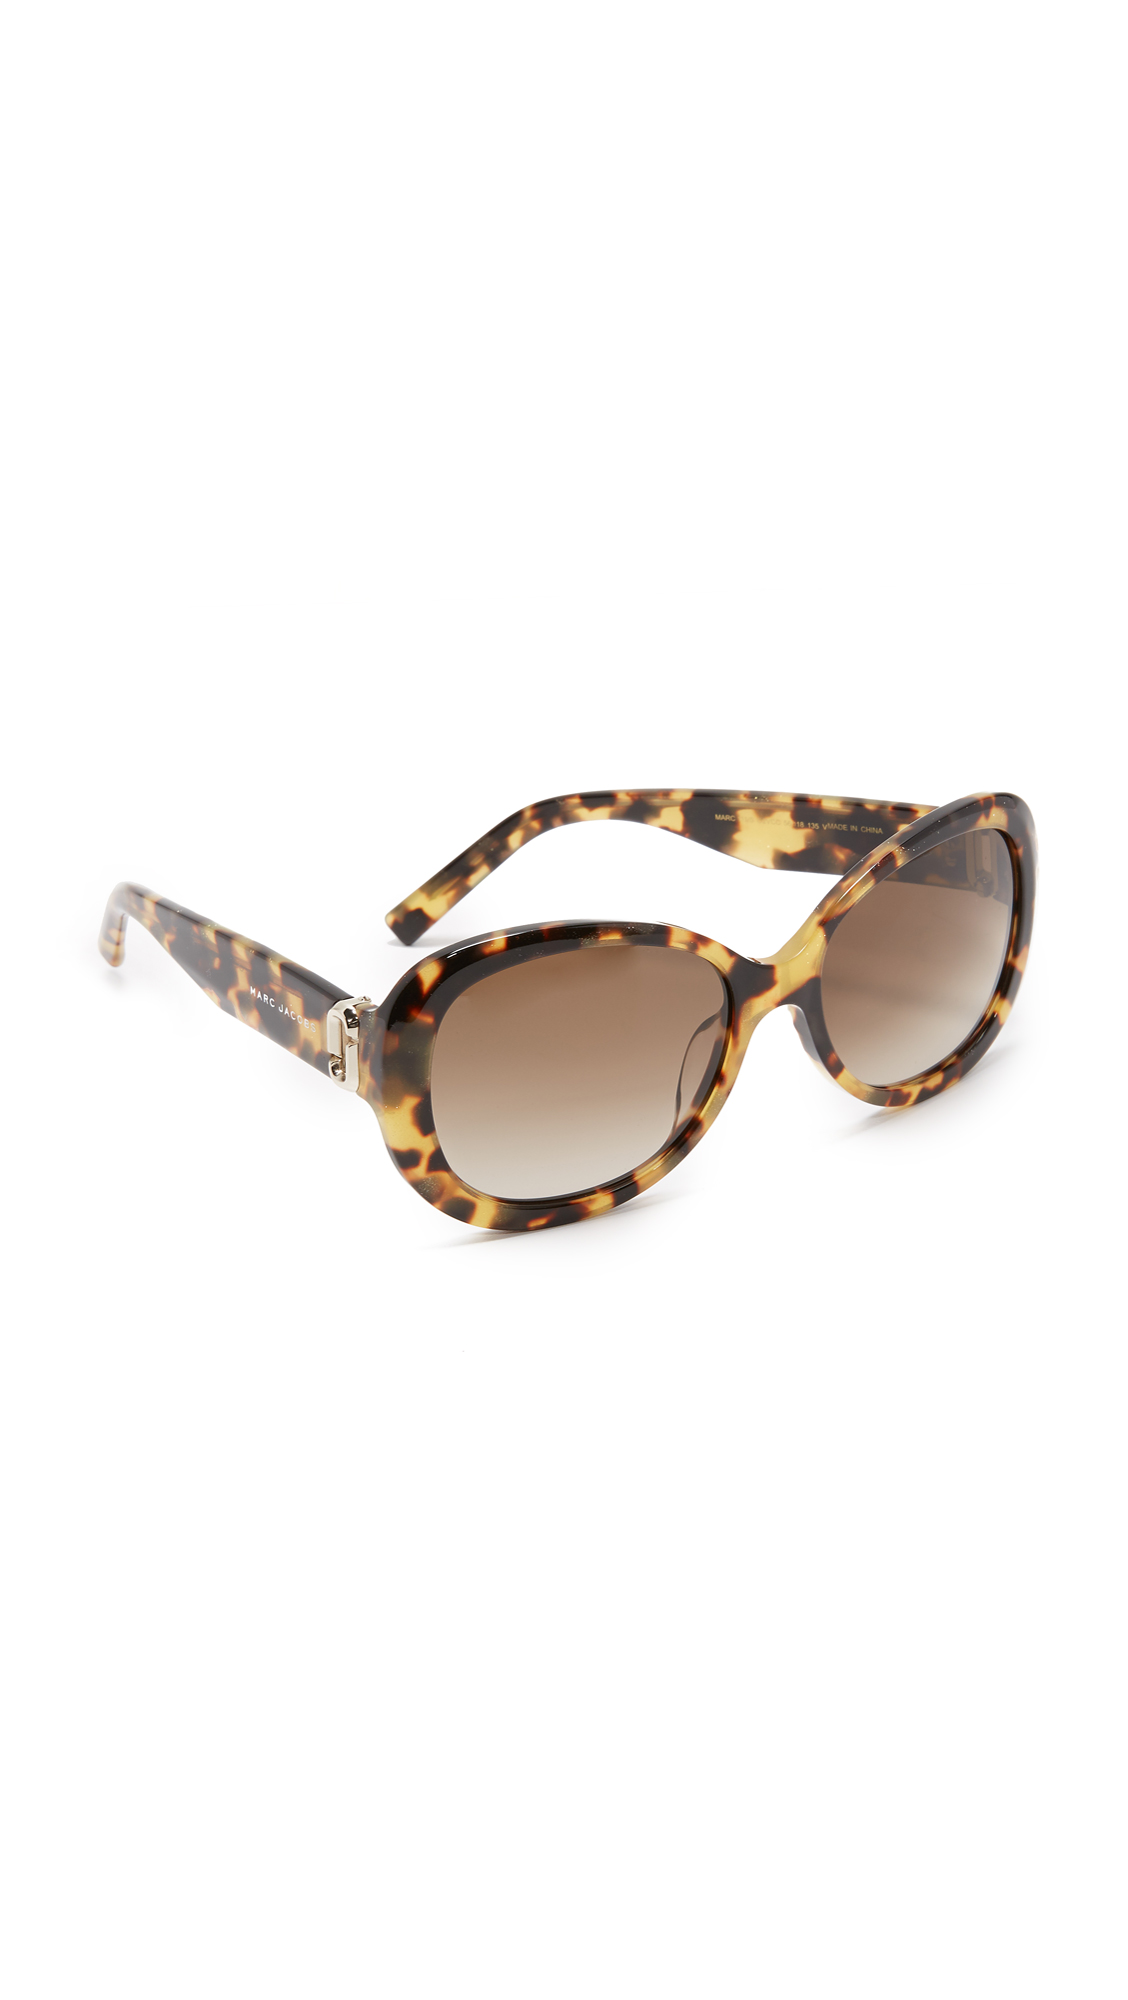 marc jacobs female 420893 marc jacobs oval sunglasses glitter havanabrown